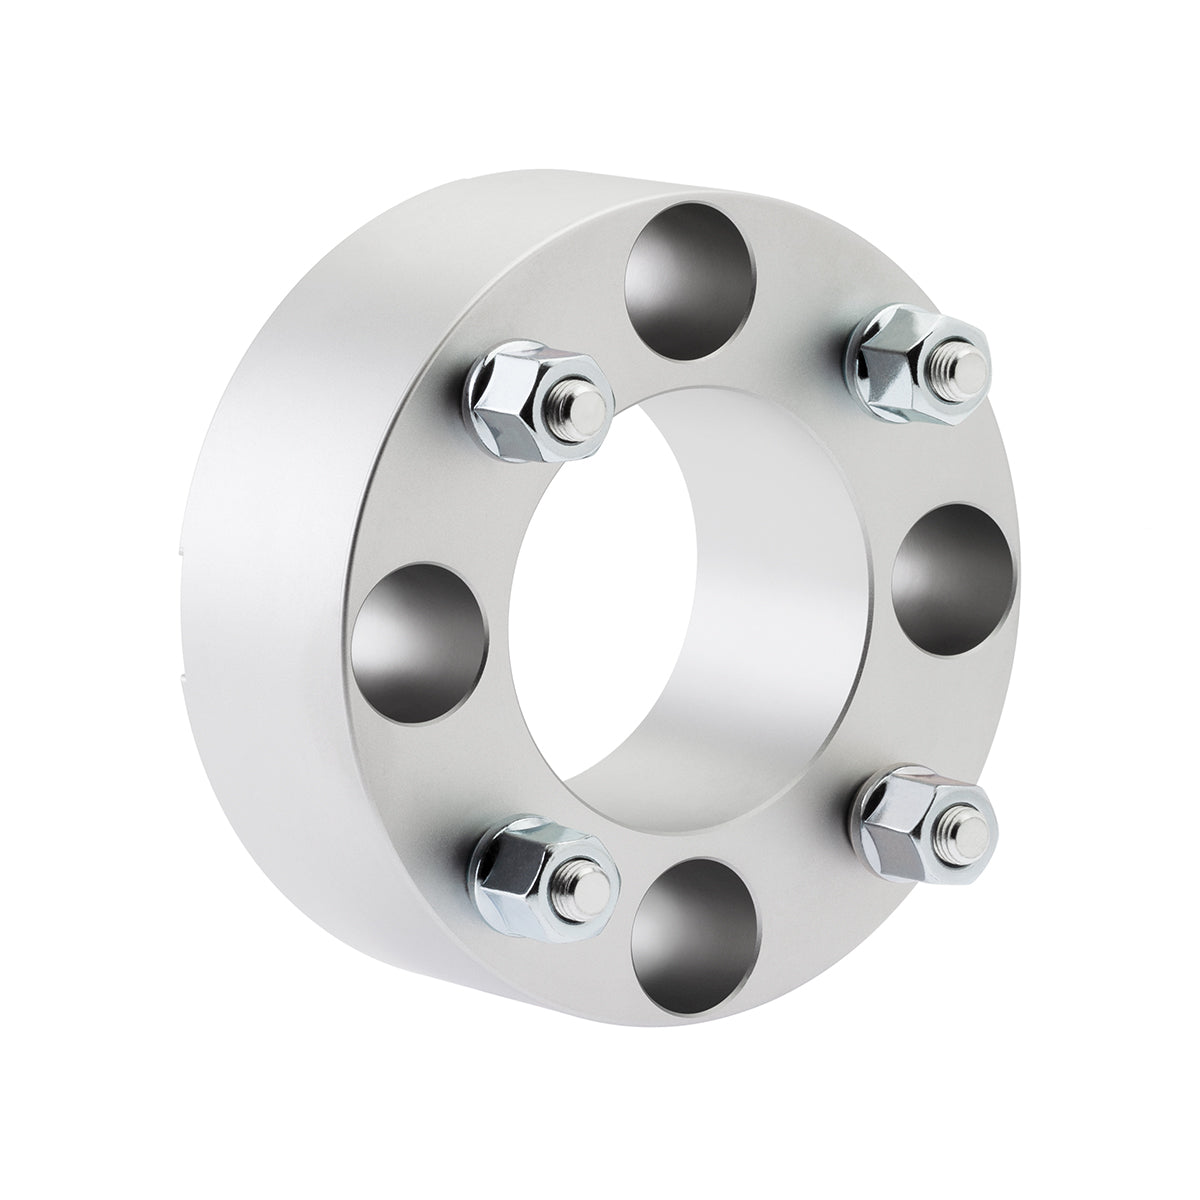 2009-2014 Yamaha Grizzly 550 Billet Wheel Spacers Kit